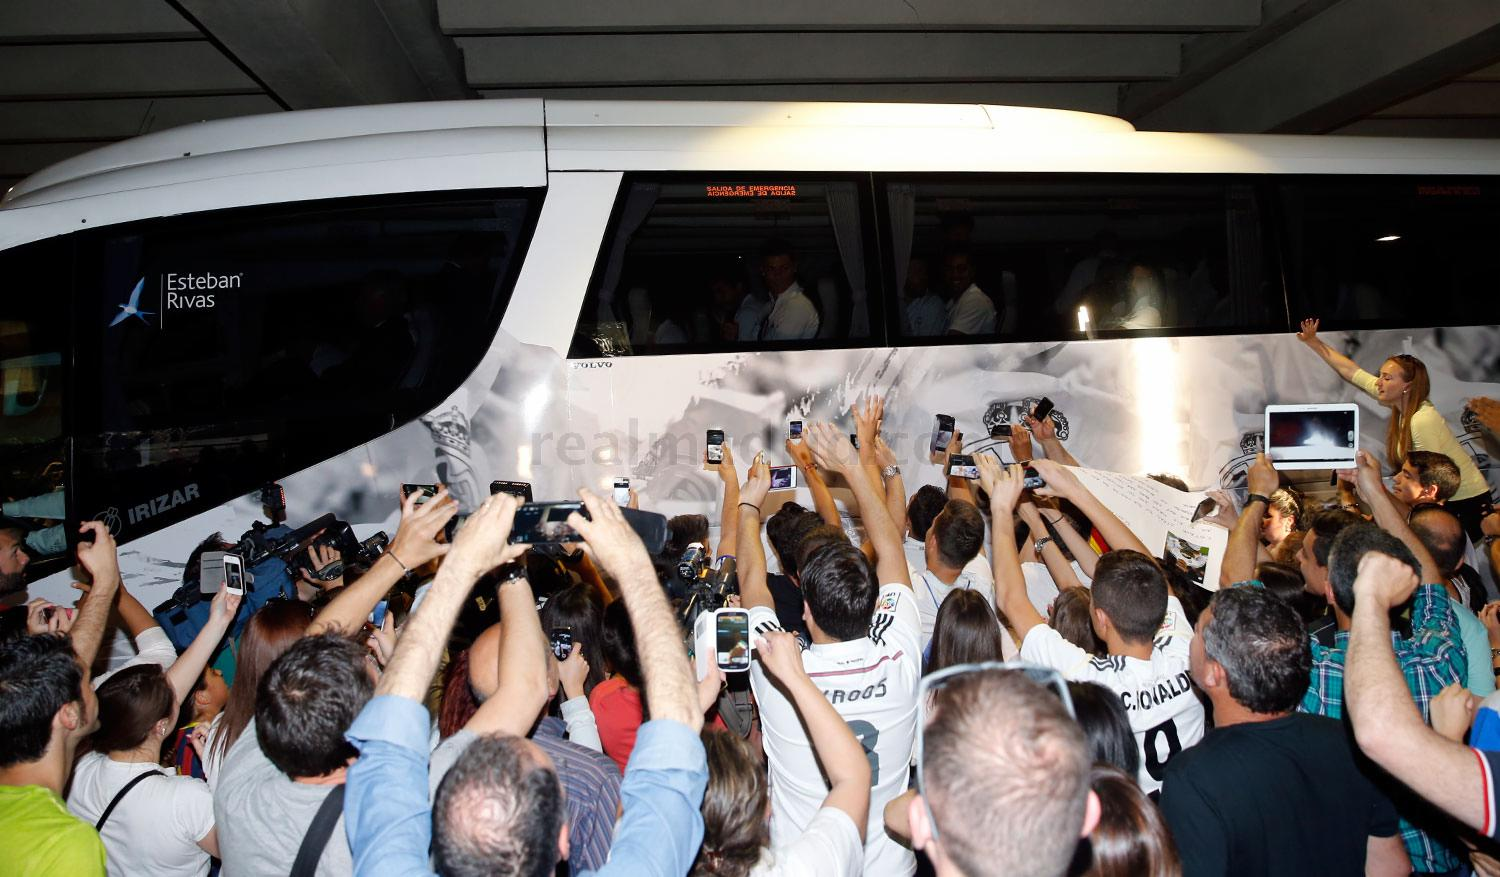 Real Madrid - Llegada del Real Madrid a Sevilla - 01-05-2015